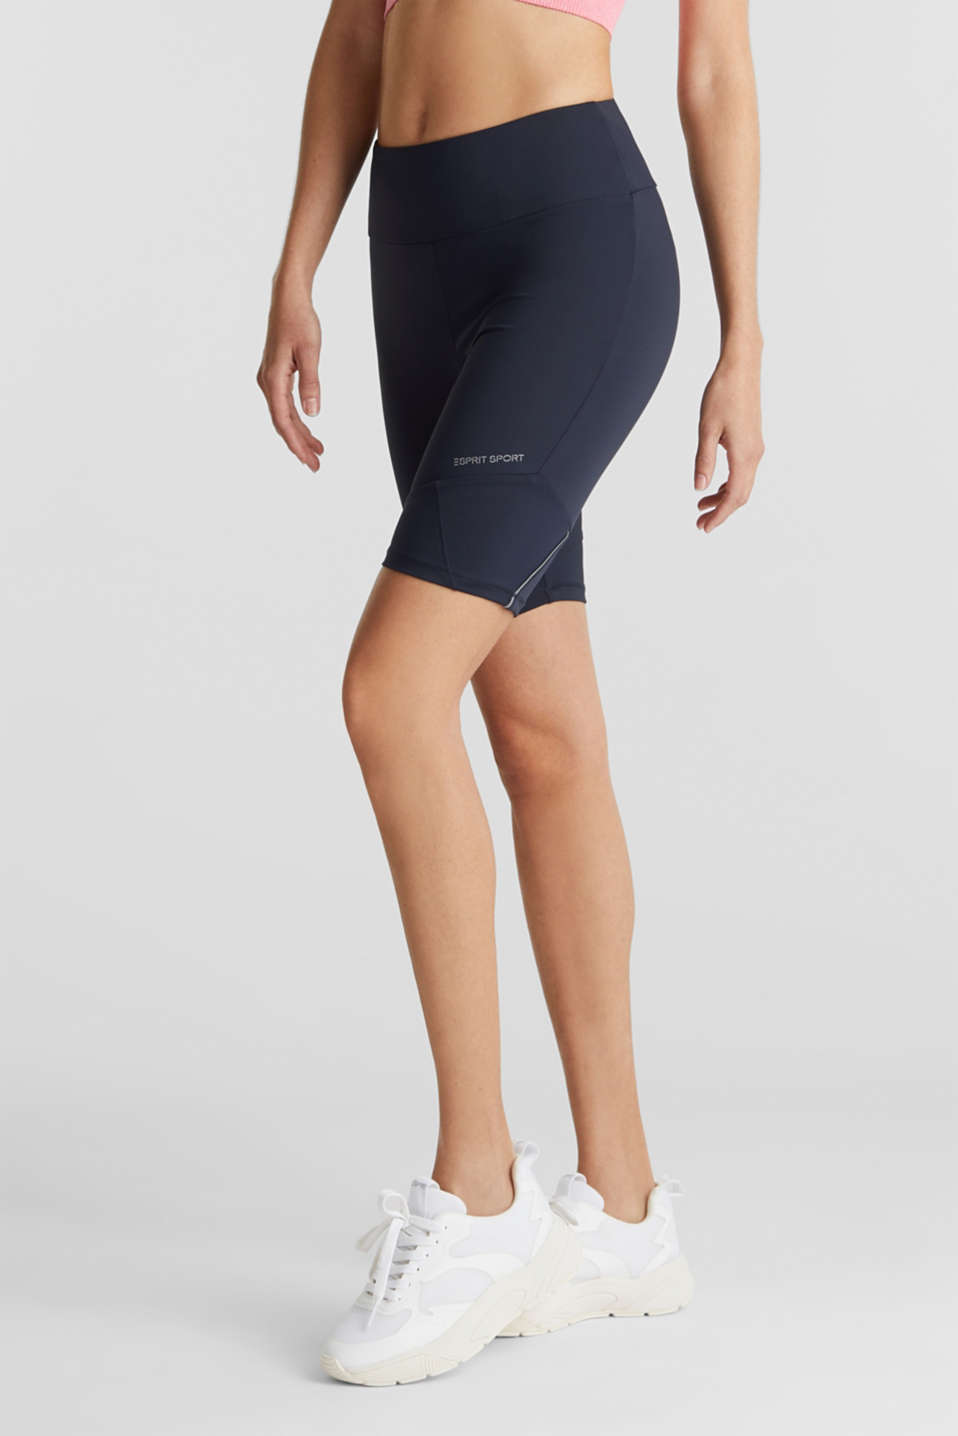 Esprit - E-DRY leggings with mesh details